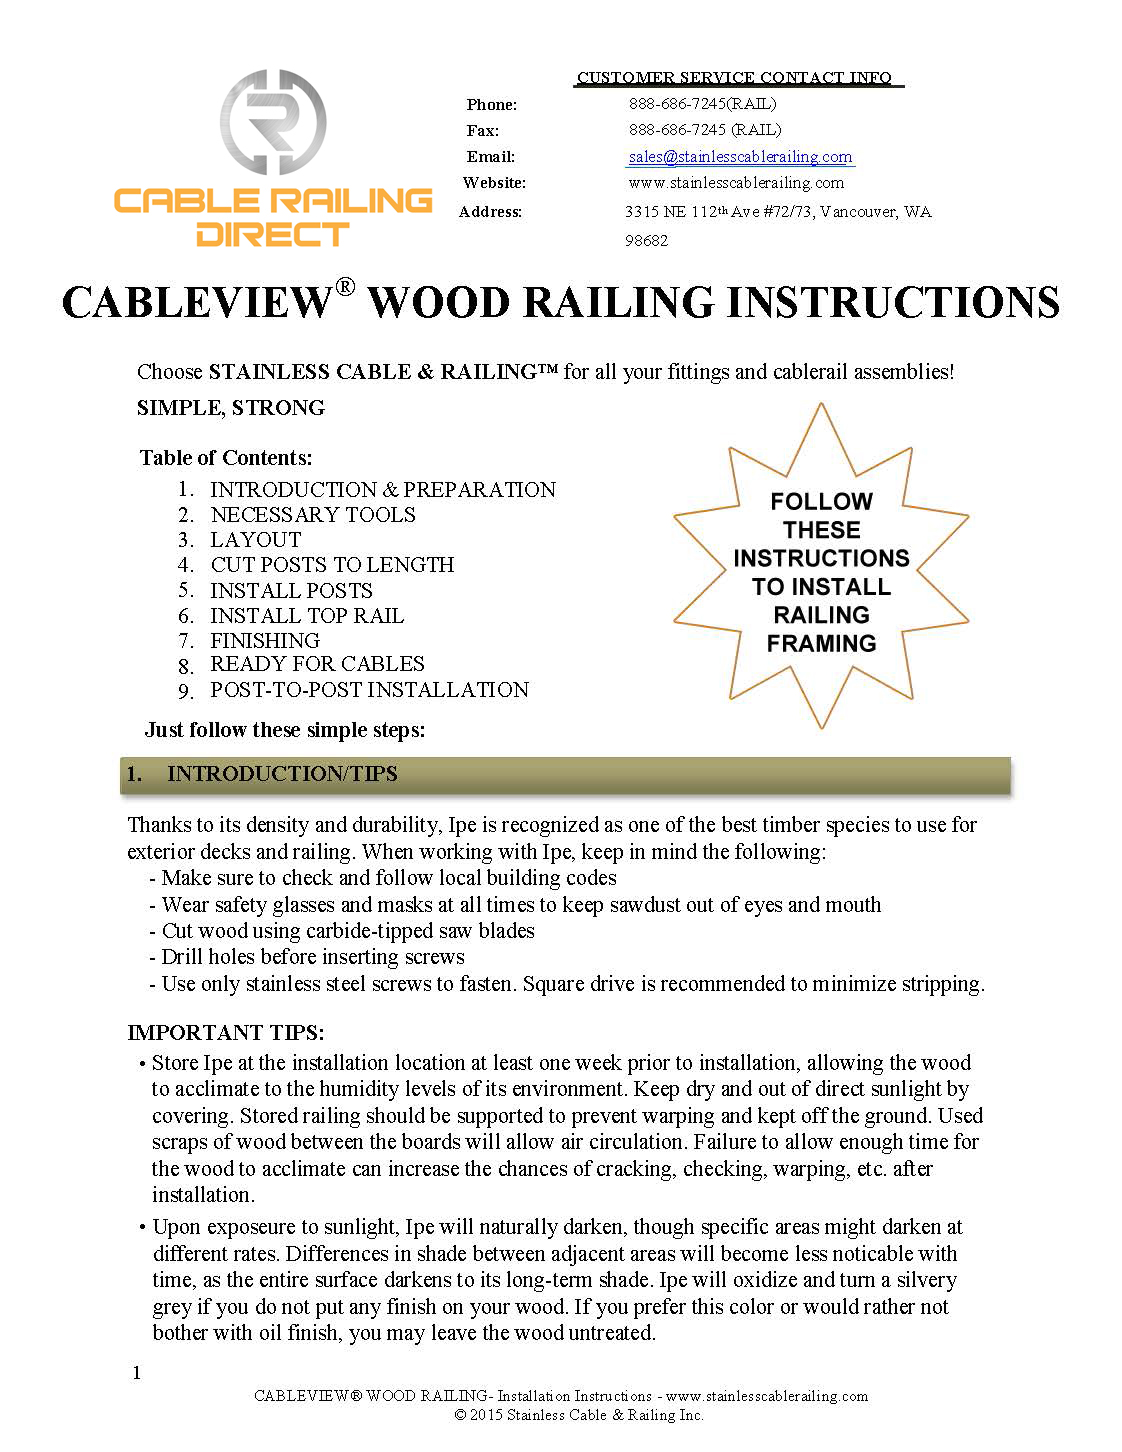 CABLEVIEW-WOOD-INSTRUCTIONS_Page_01-copy